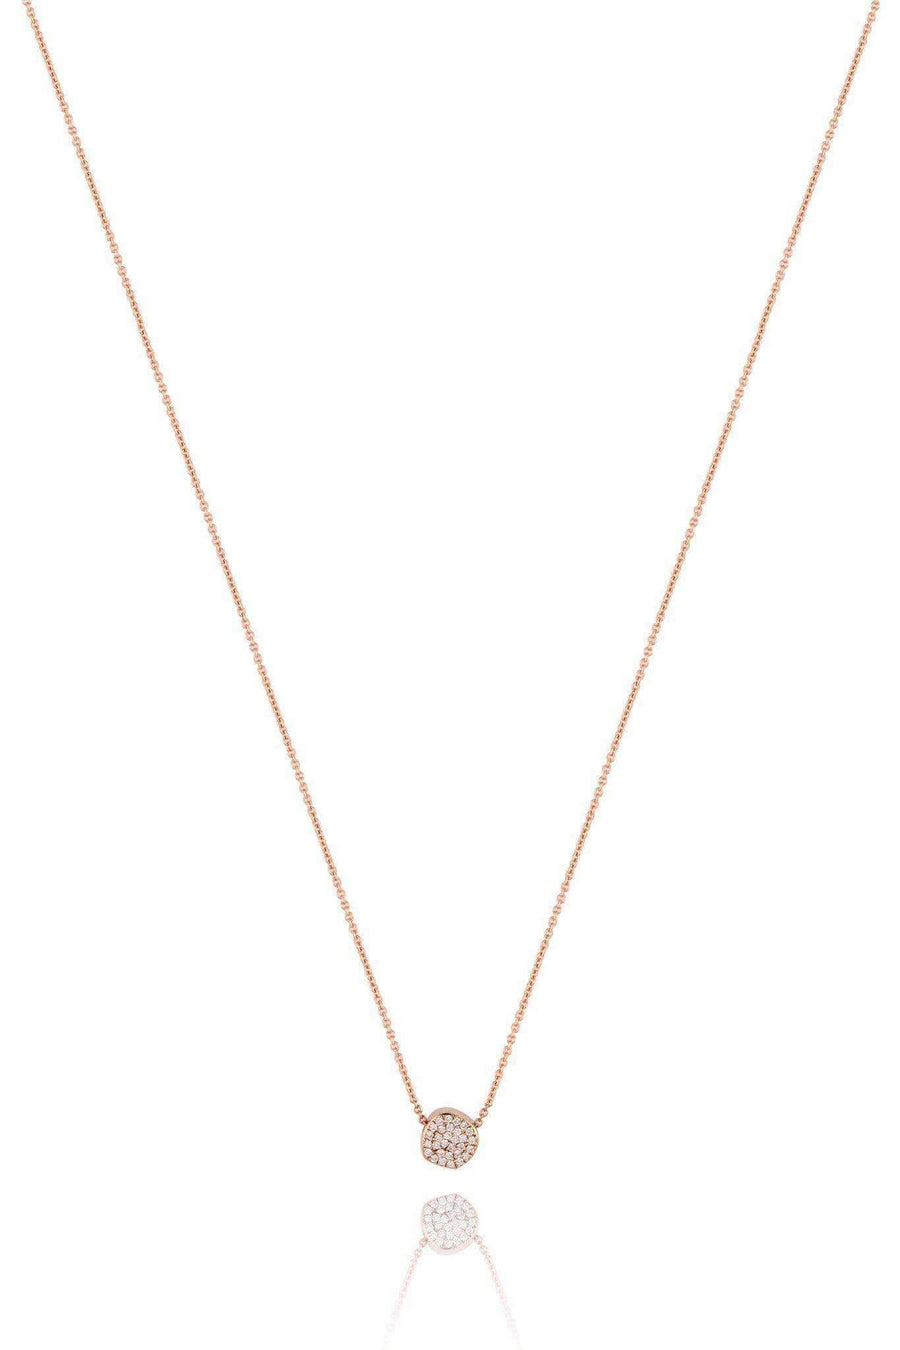 Halo Full Diamond Pendant Necklaces Lark and Berry